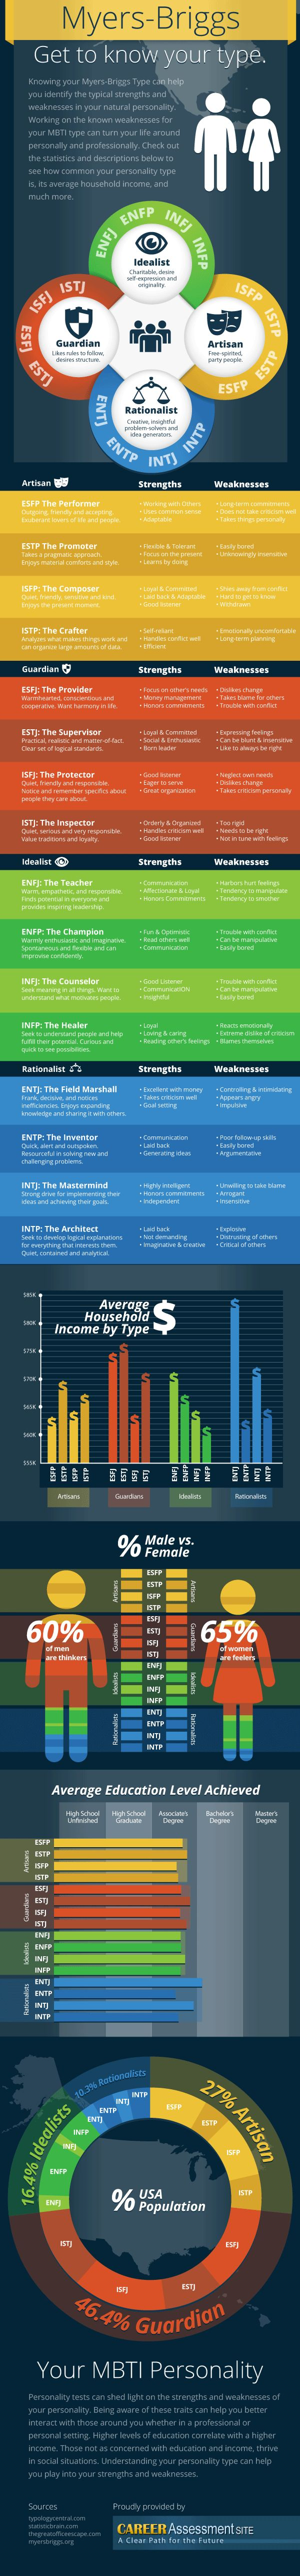 Myers-Briggs Get To Know Your Type [INFOGRAPHIC] #type